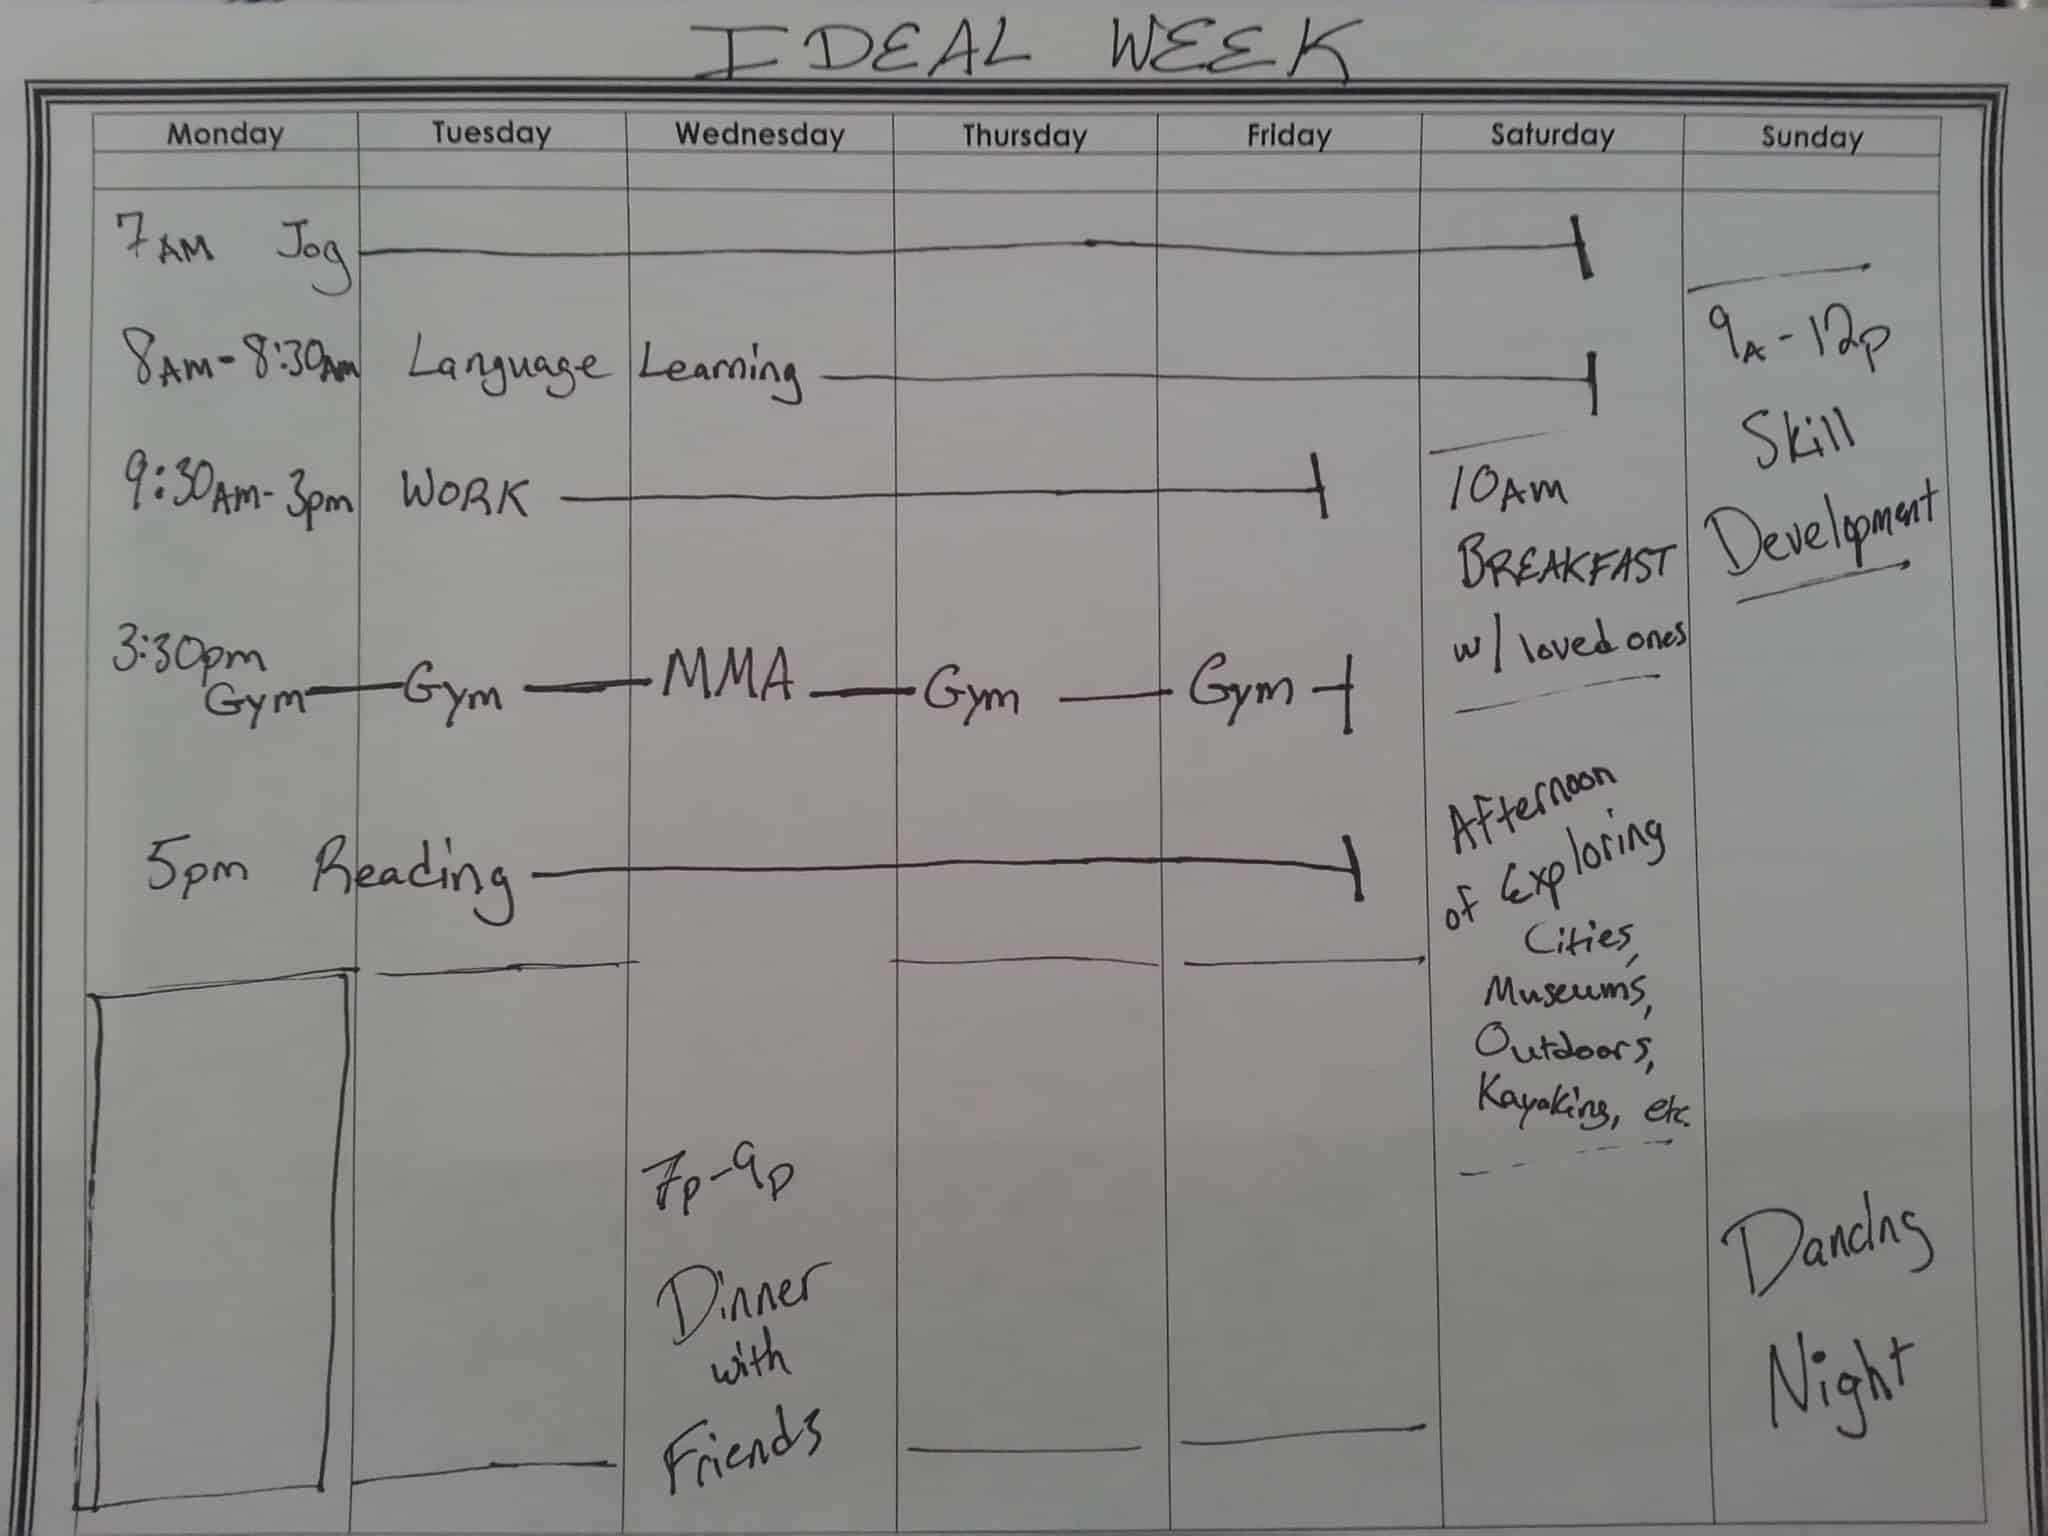 Finding My Ideal Week, And How You Can Too